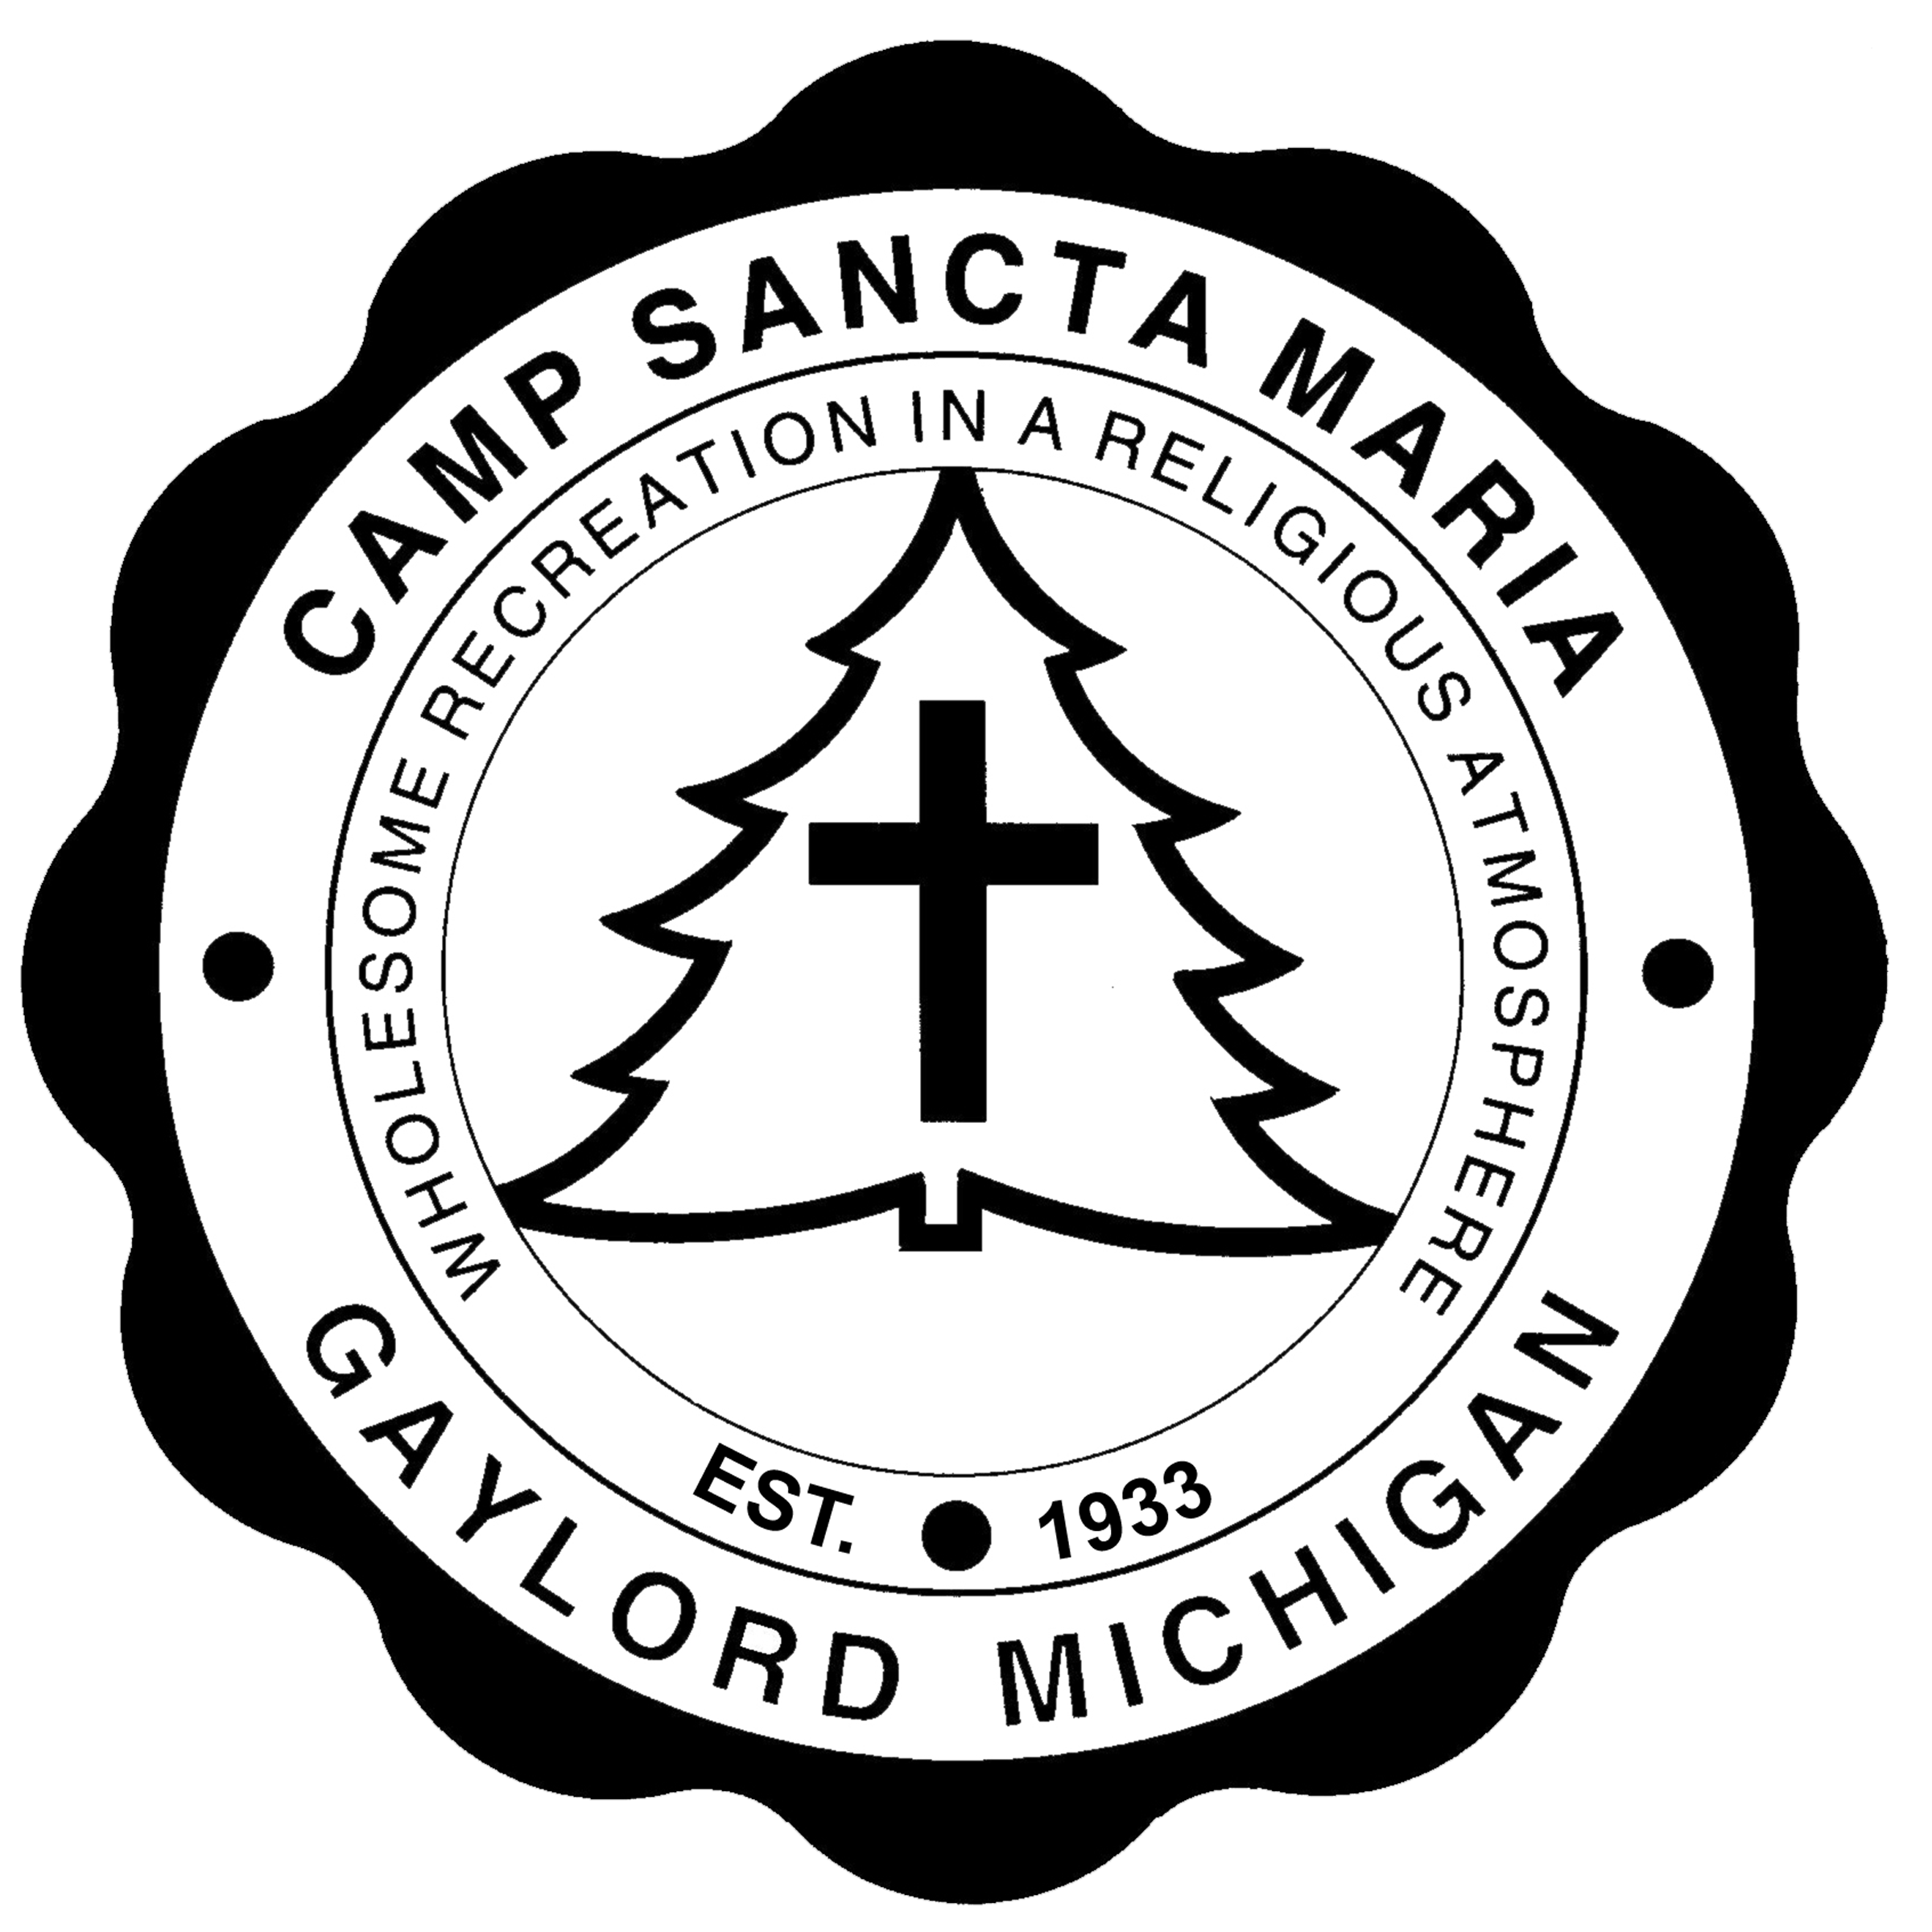 Camp Sancta Maria